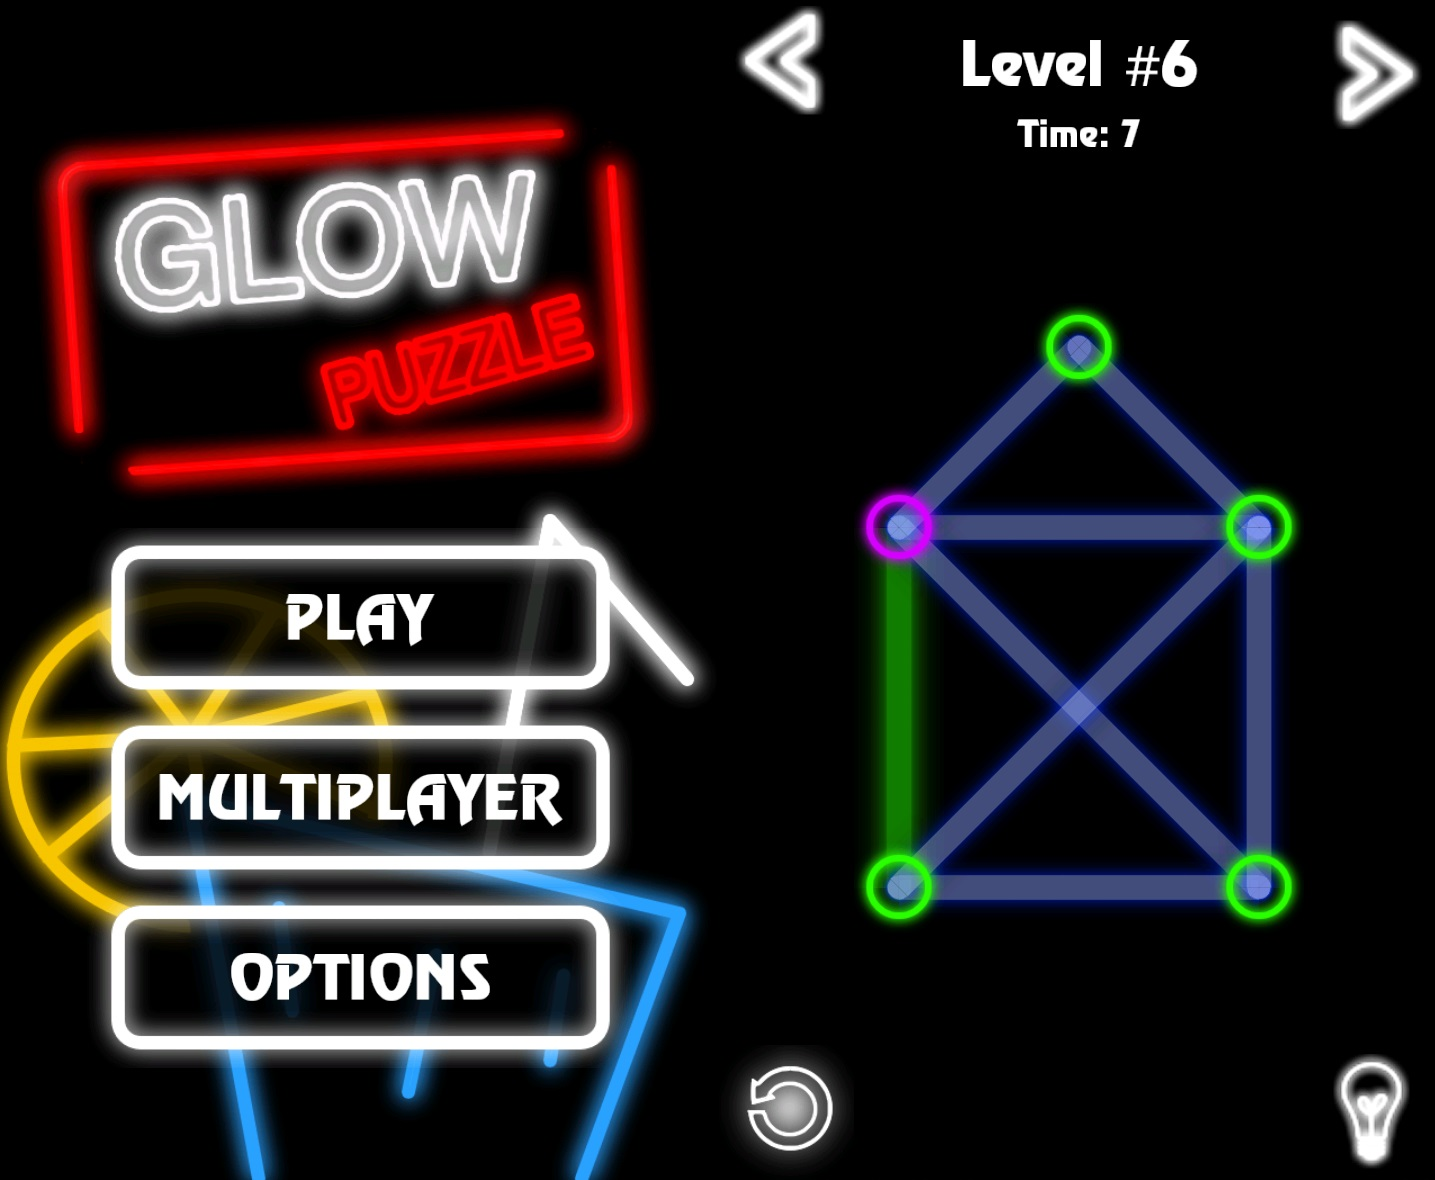 glowpuzzle android